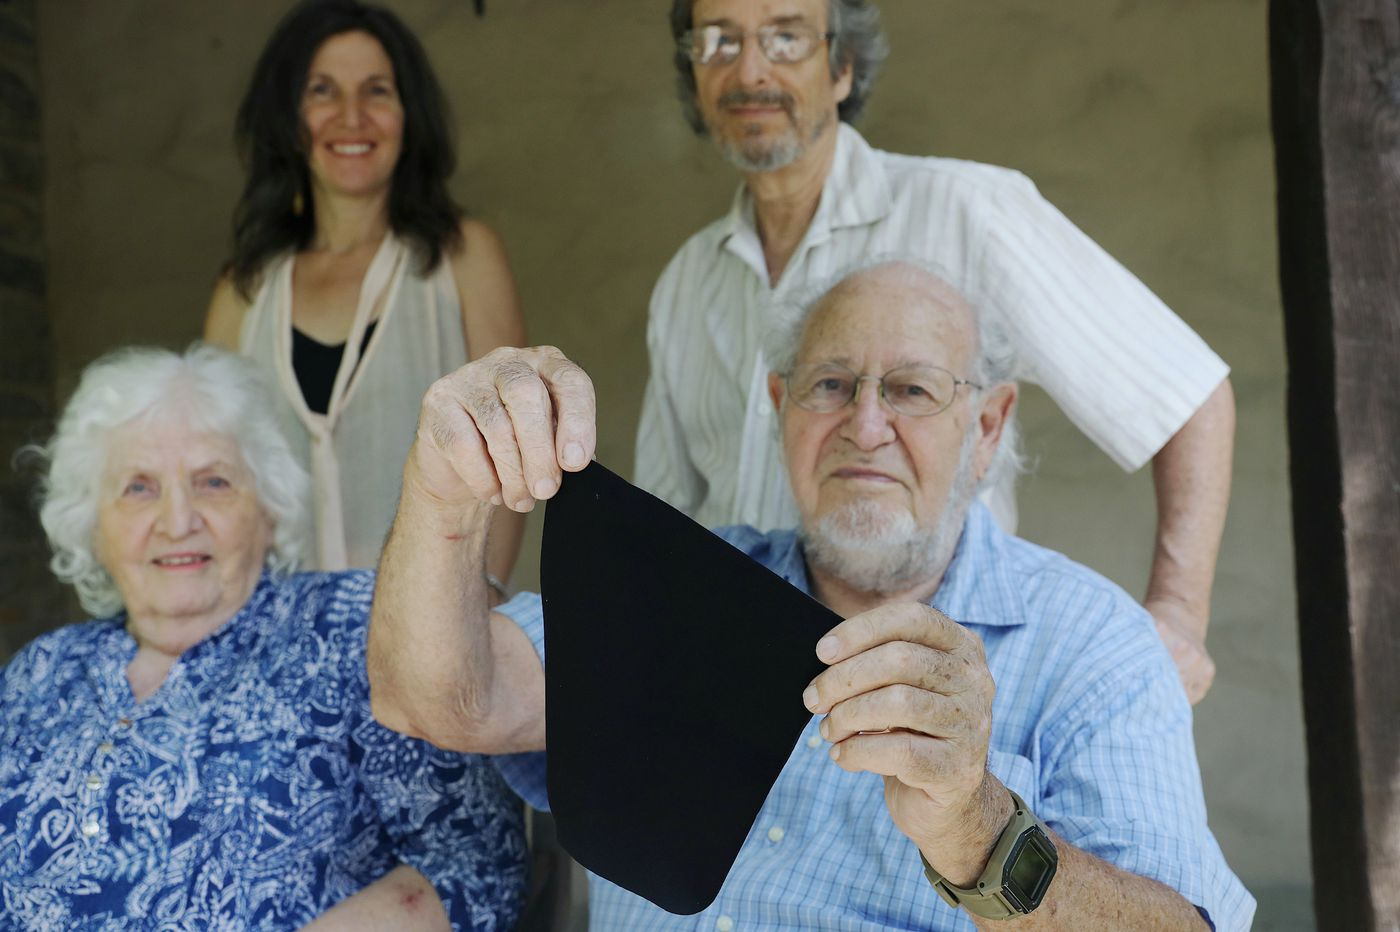 A Chestnut Hill family is producing a sanitizing wipe that lasts 30 days and can be used 600 times